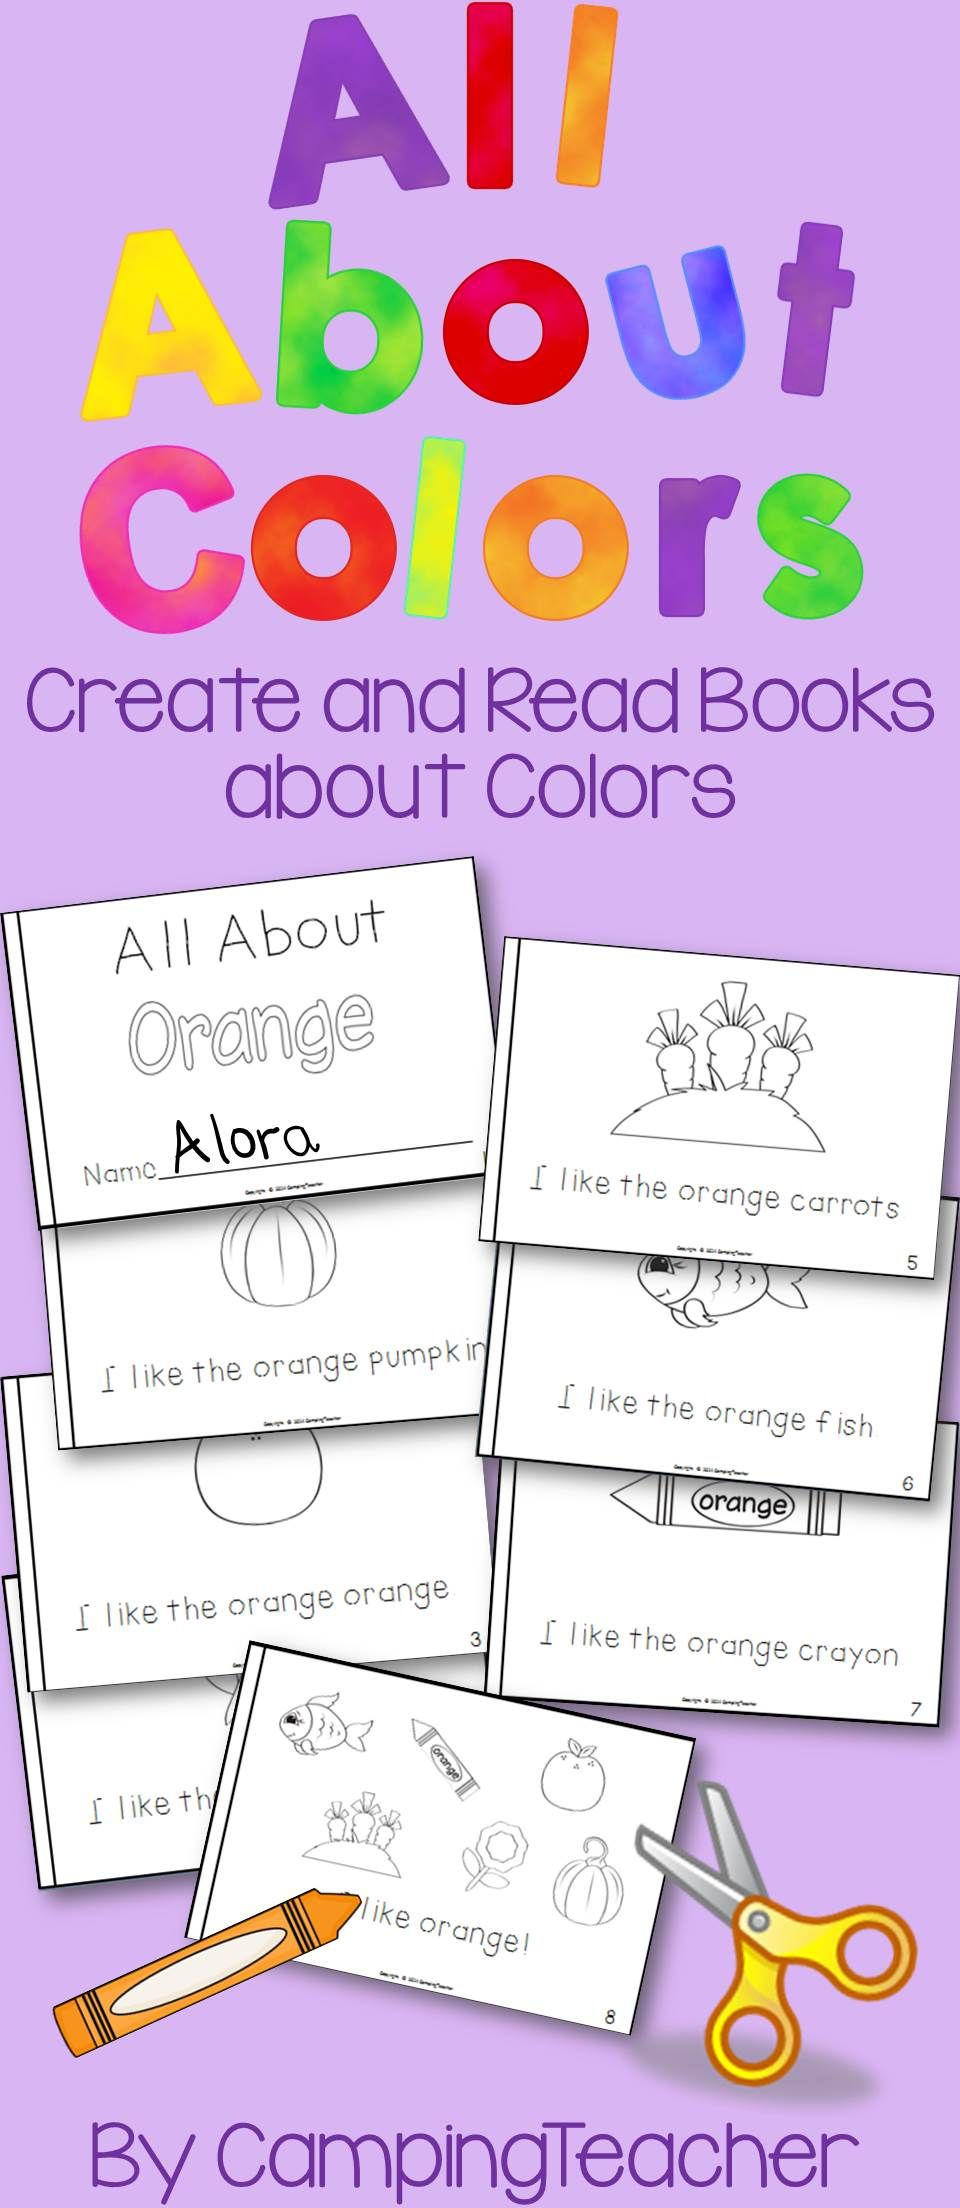 All About Colors Create and Read Books about Colors | Kinder ...